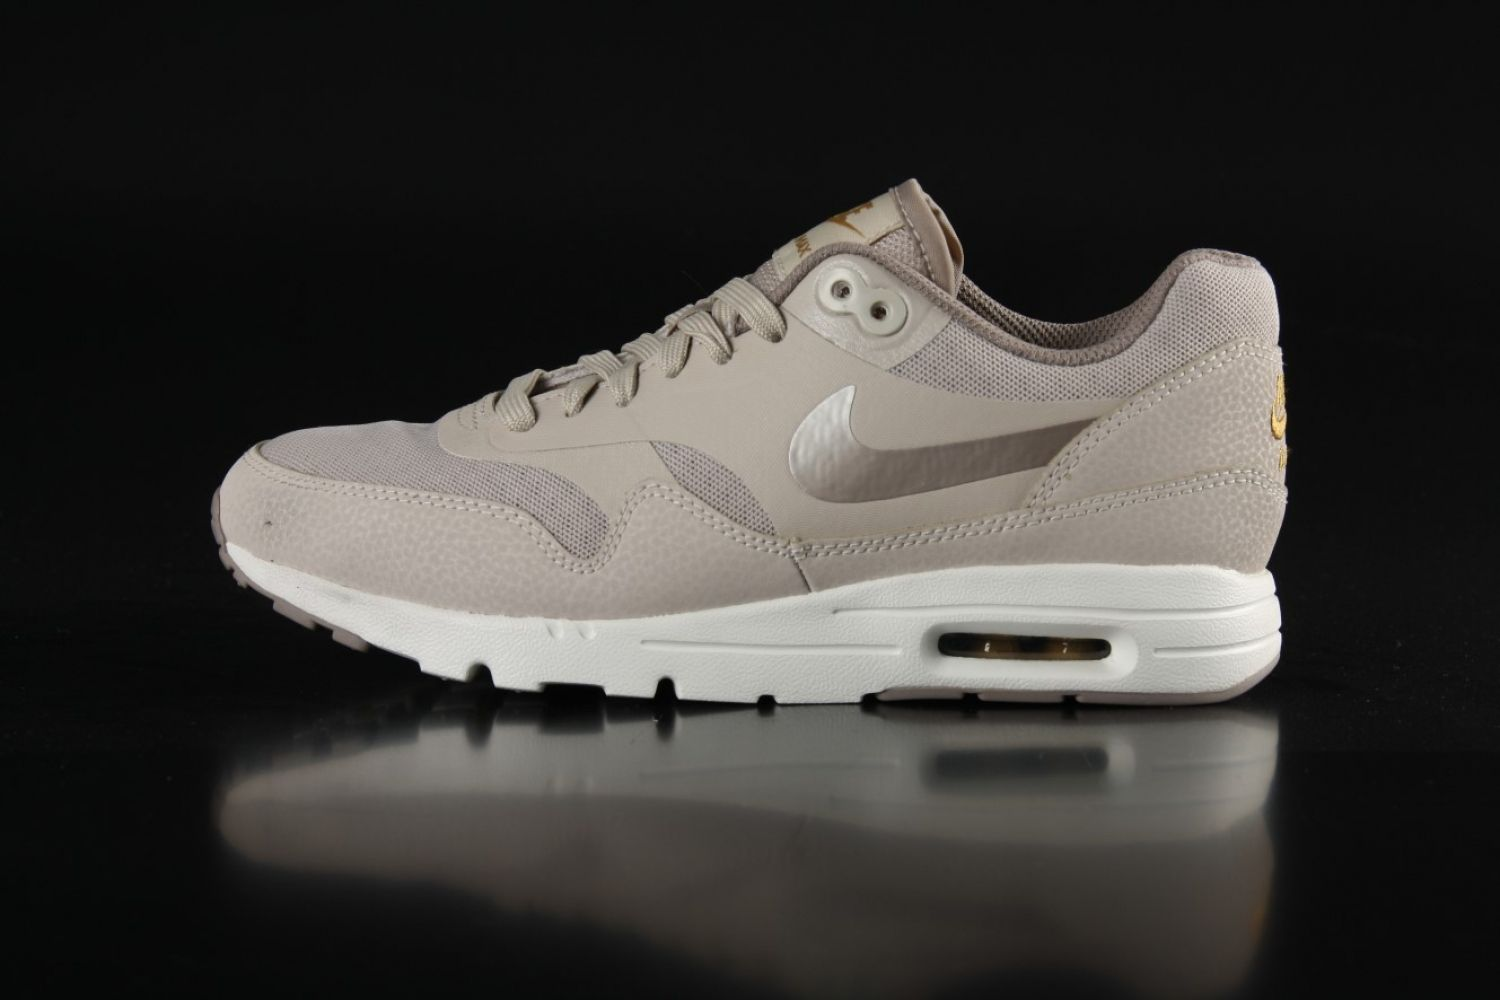 nike schoen / sneaker air max 1 essential in within